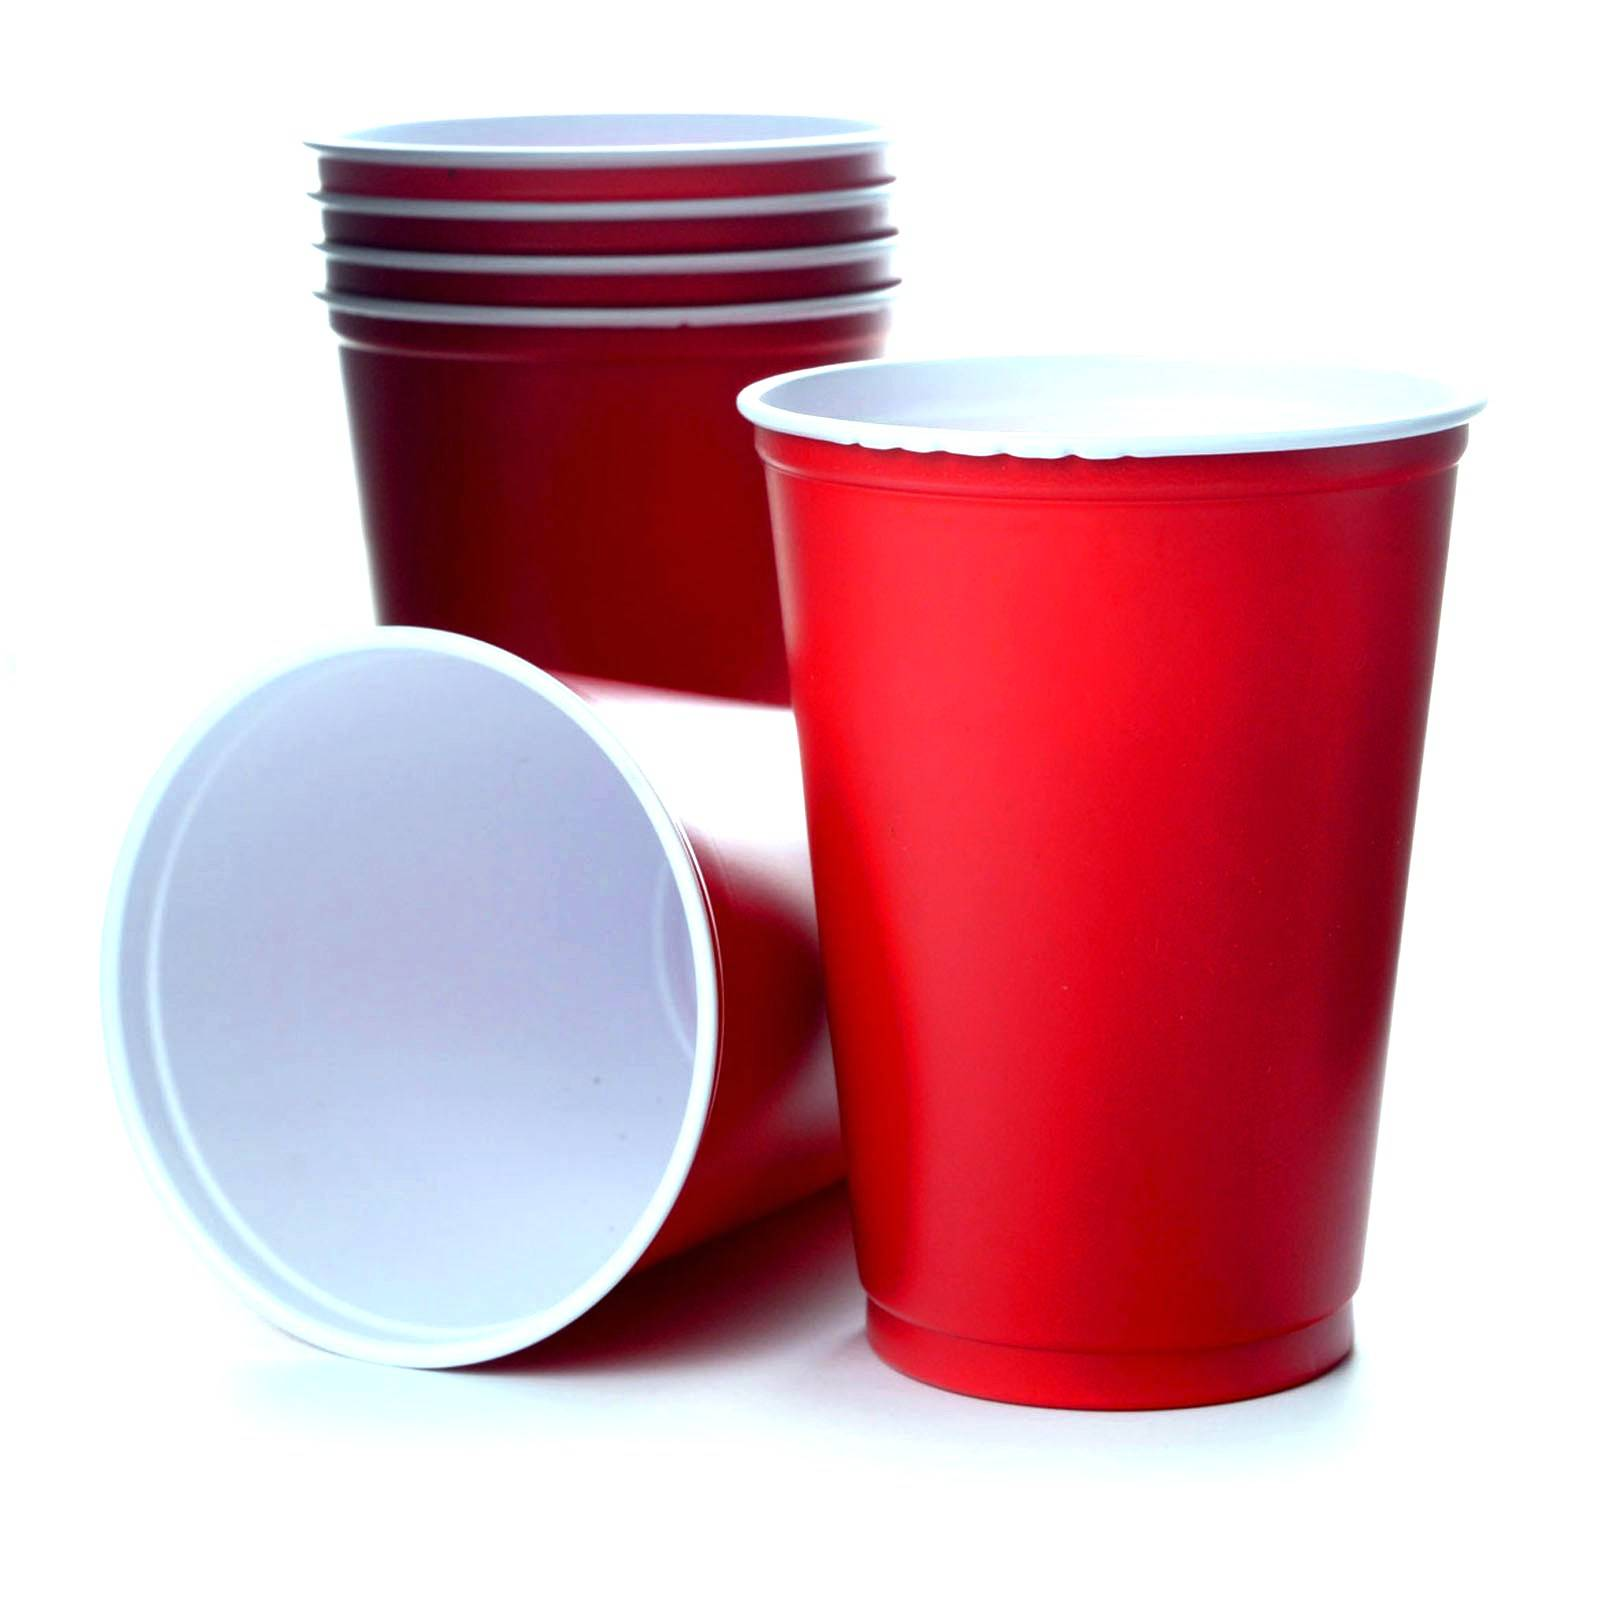 1000 x red solo cups 10oz 295ml rote becher beer pong red cups usa amerika ebay. Black Bedroom Furniture Sets. Home Design Ideas